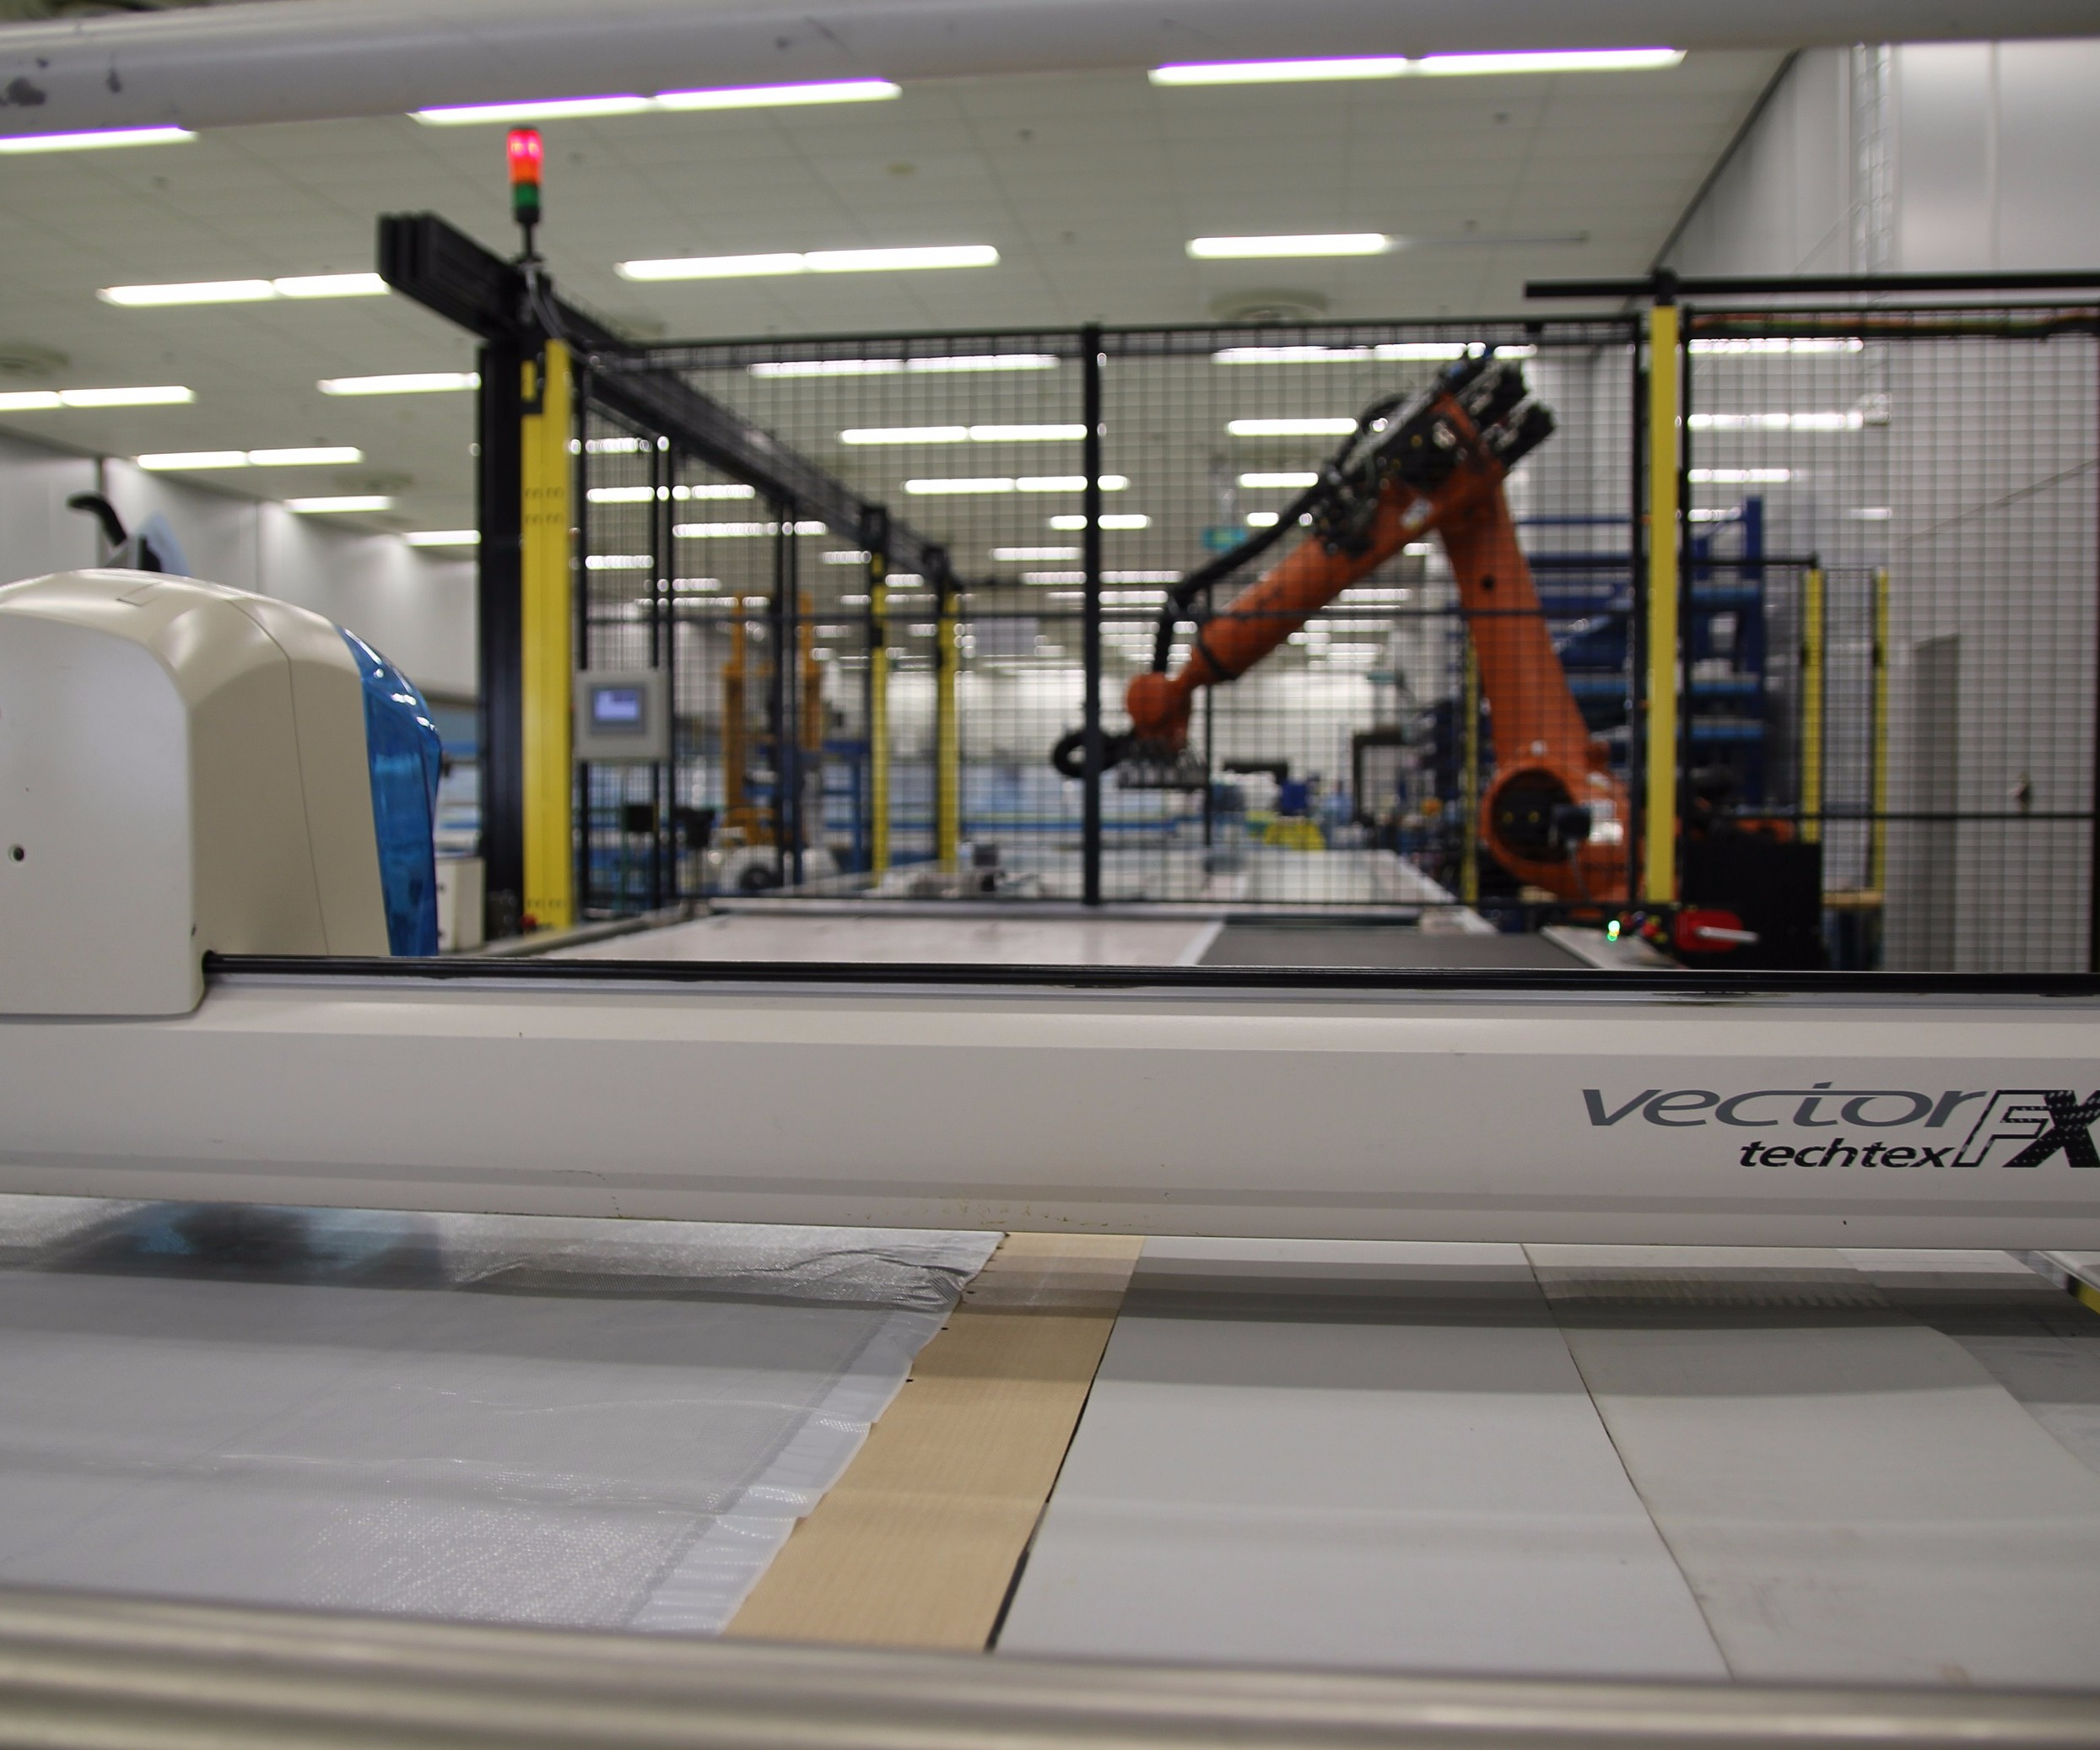 Airborne automated cutting and kitting solution